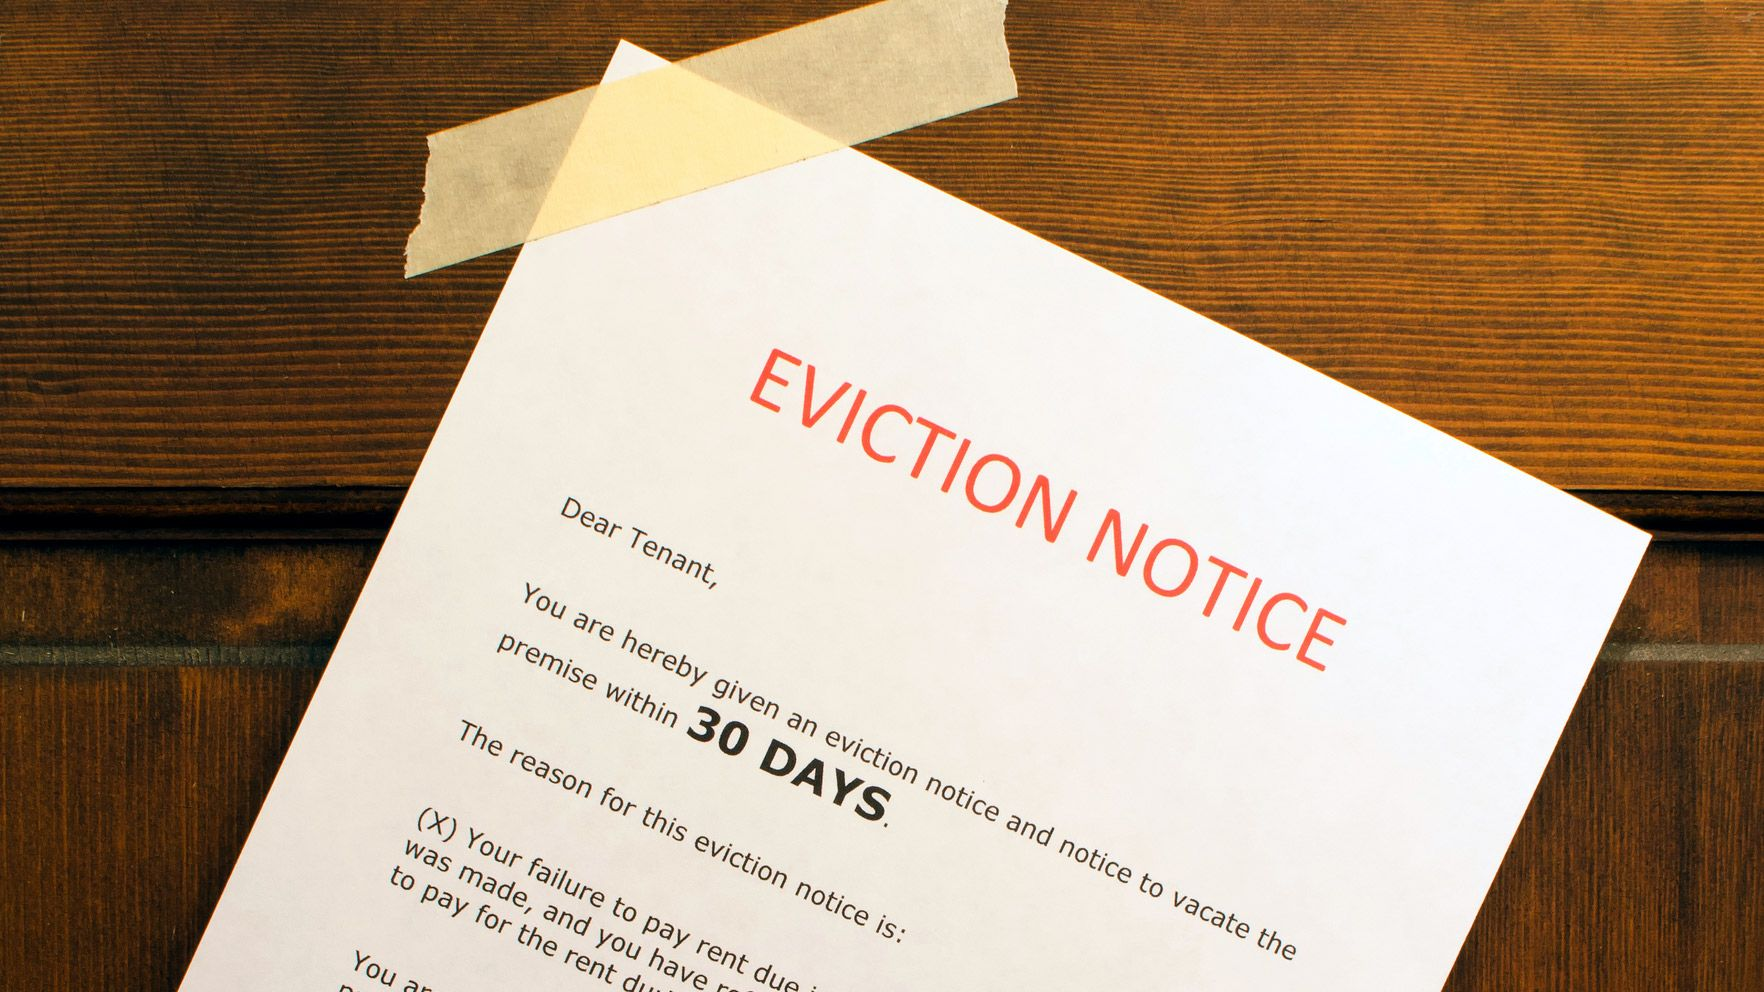 How to Stop Eviction — End Eviction